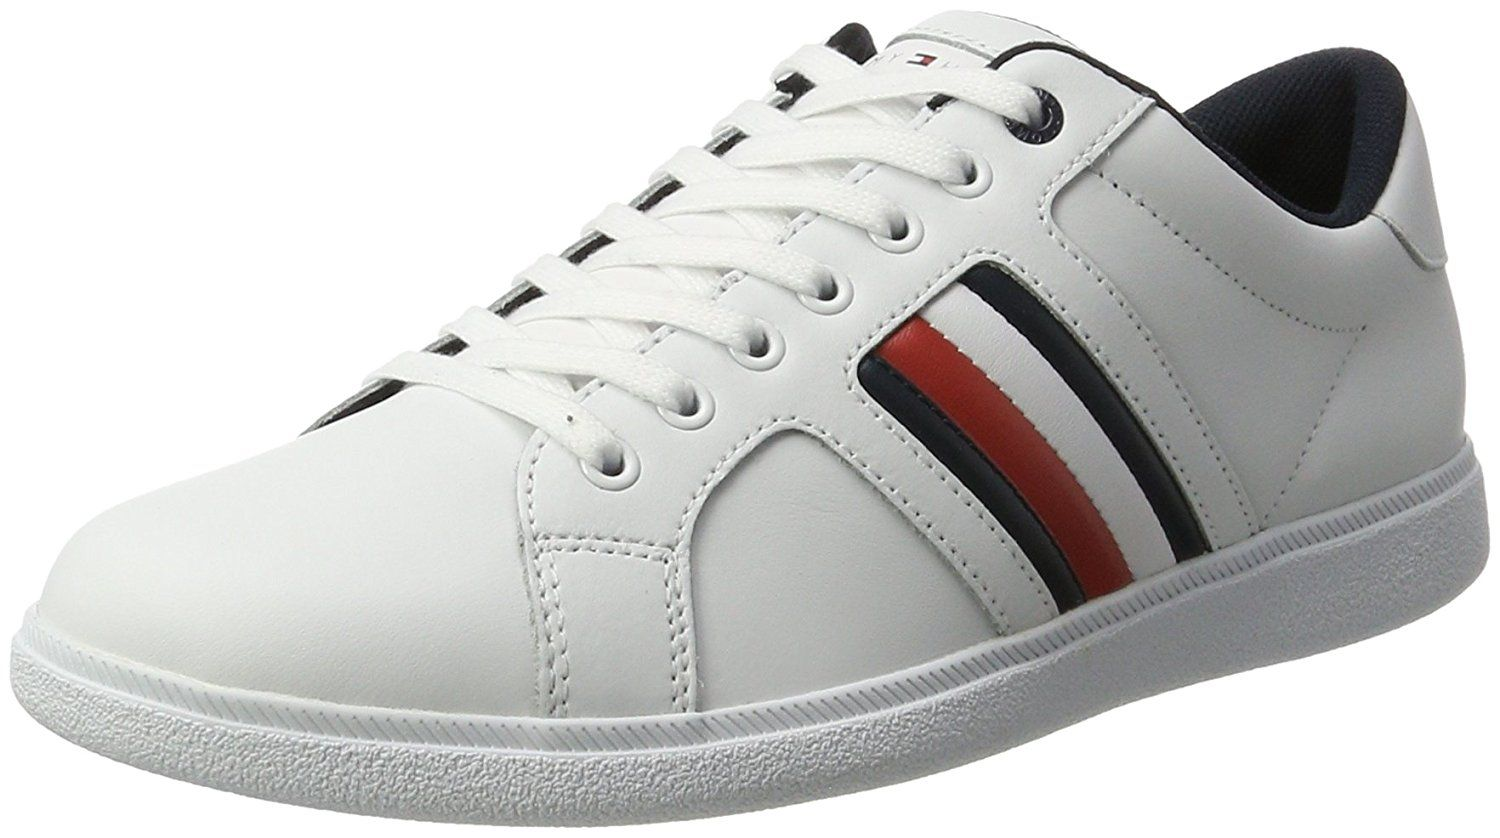 Mens D2285anny 1c3 Low-Top Sneakers Tommy Hilfiger